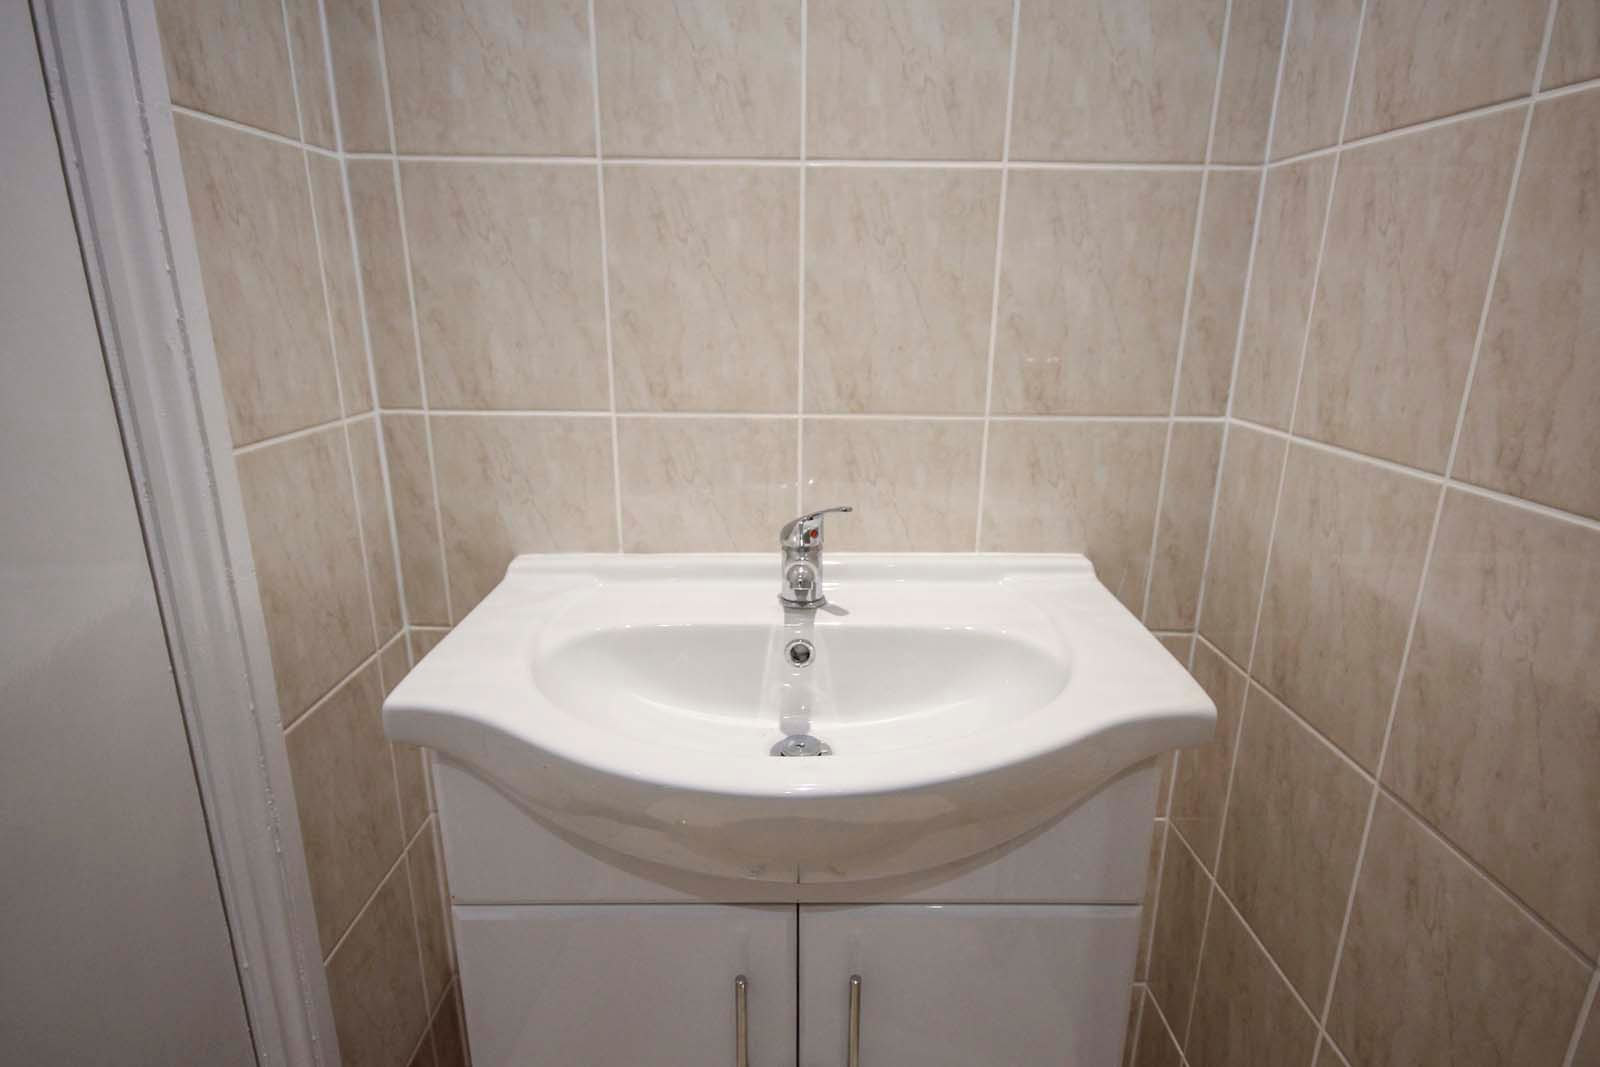 1 bed Apartment to rent in Littlehampton - Shower room (Property Image 7)